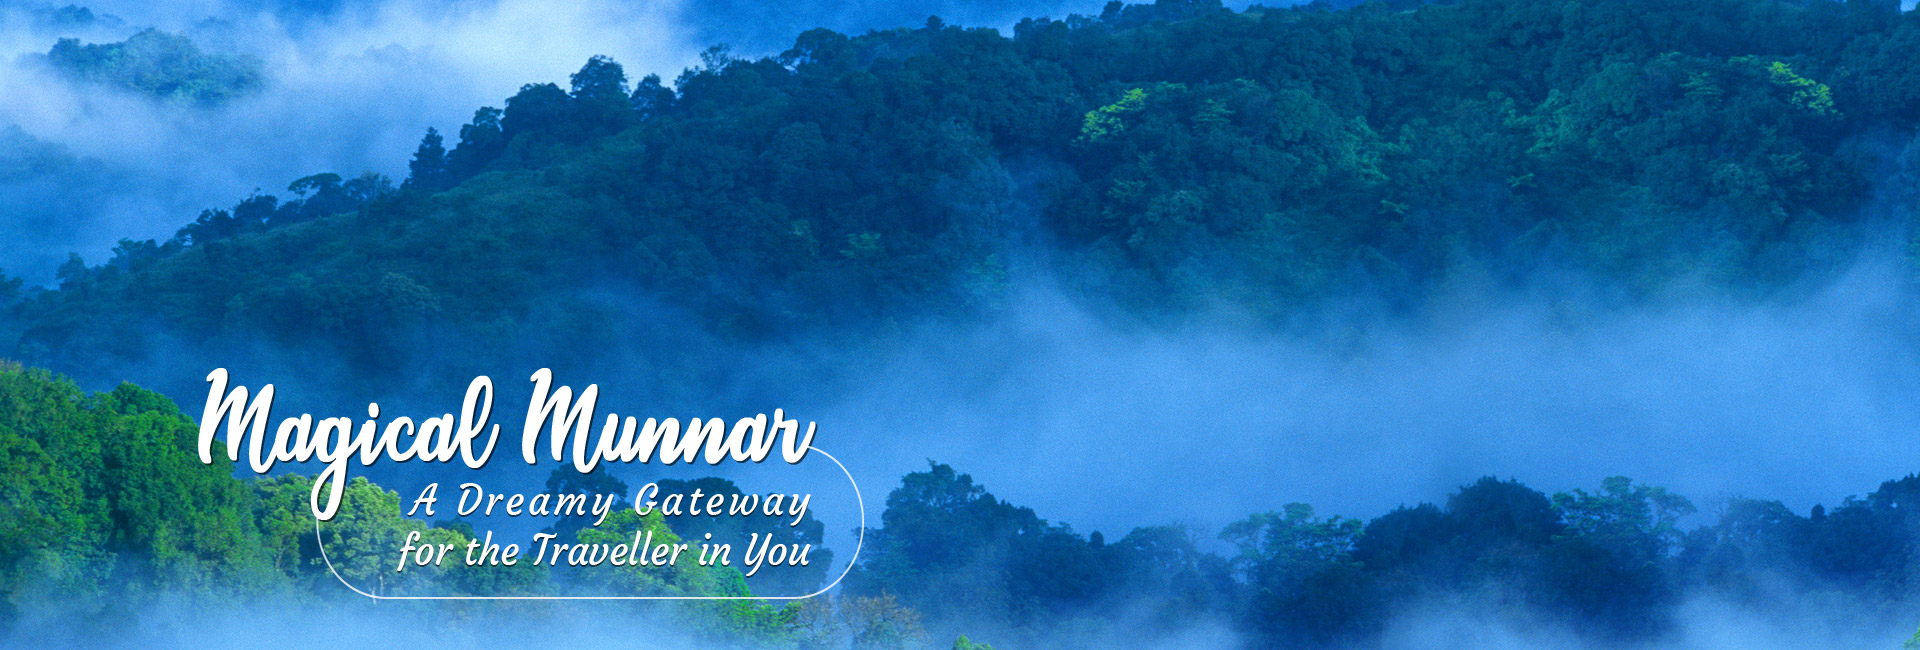 Magical Munnar, A Dreamy Gateway for the Traveller in You